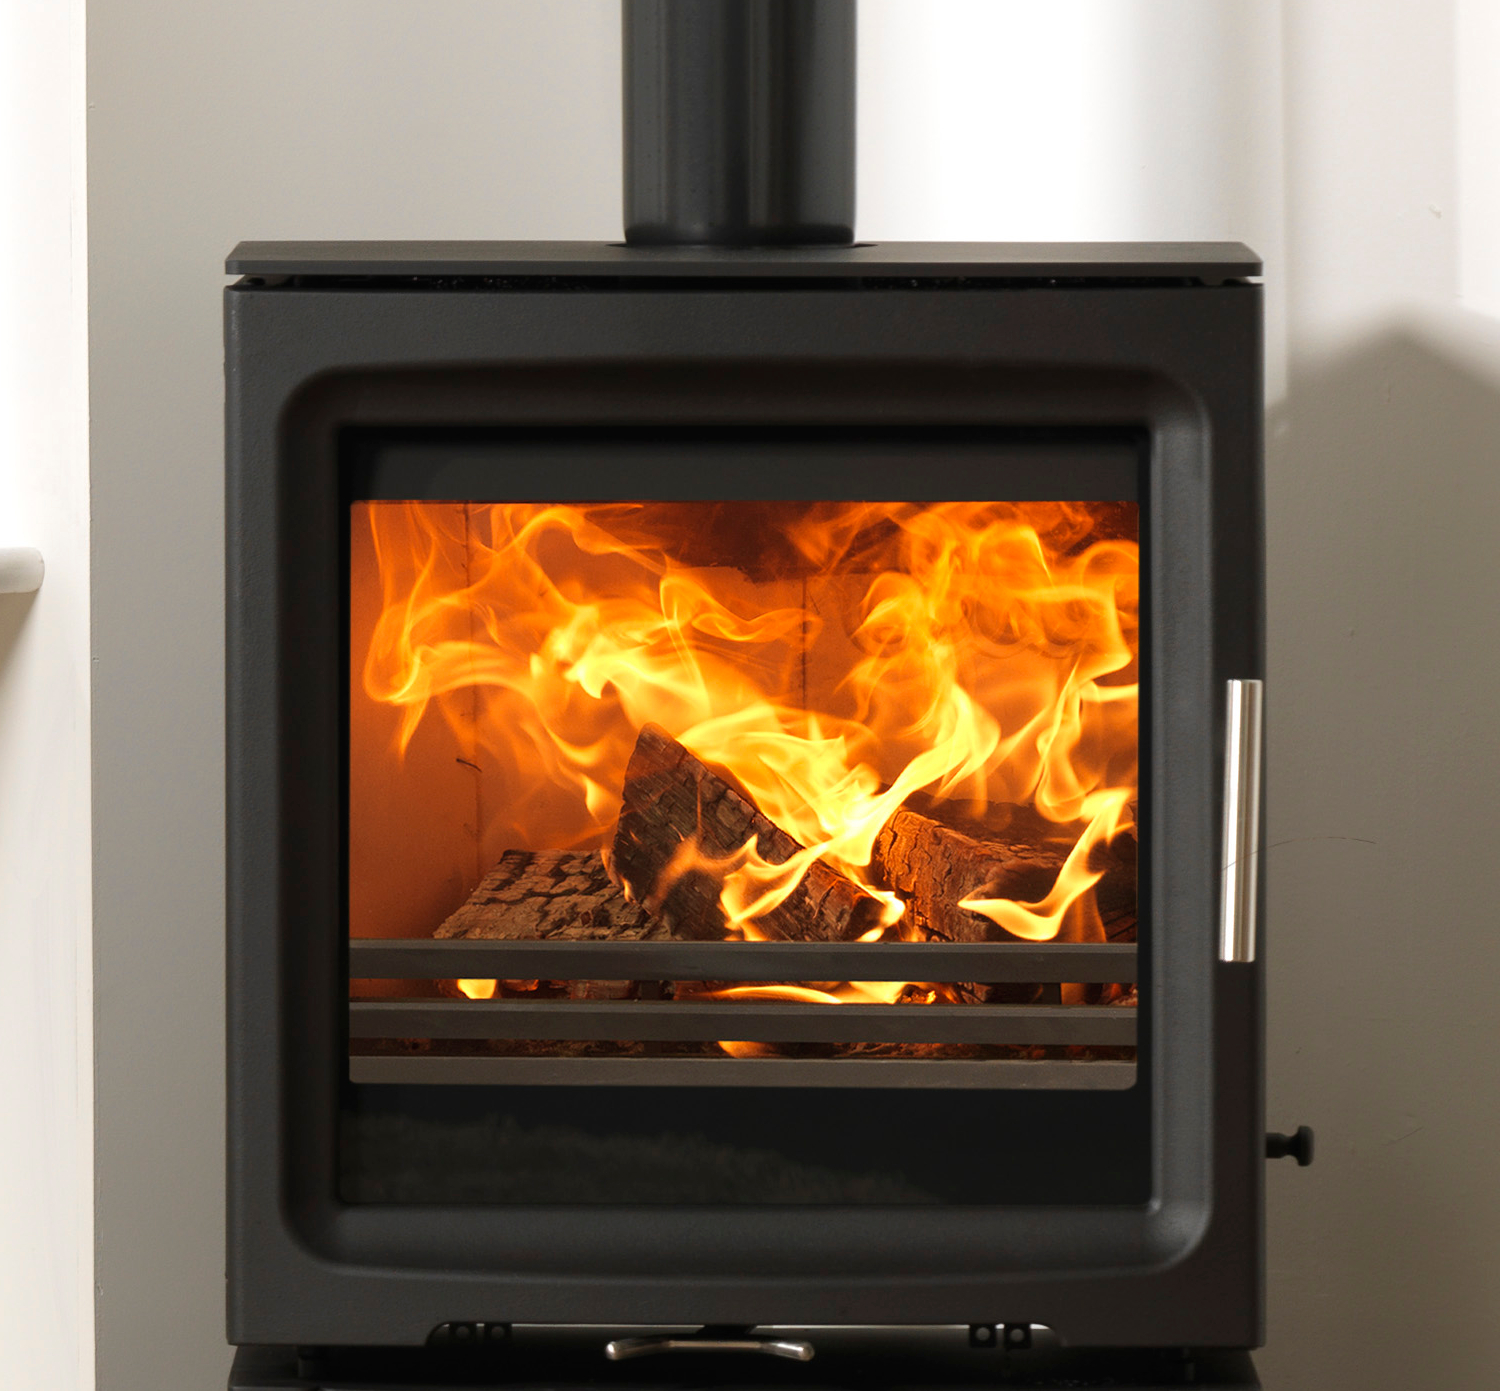 Purevision Bpv5w 5kw Freestanding Multifuel Stove In Black